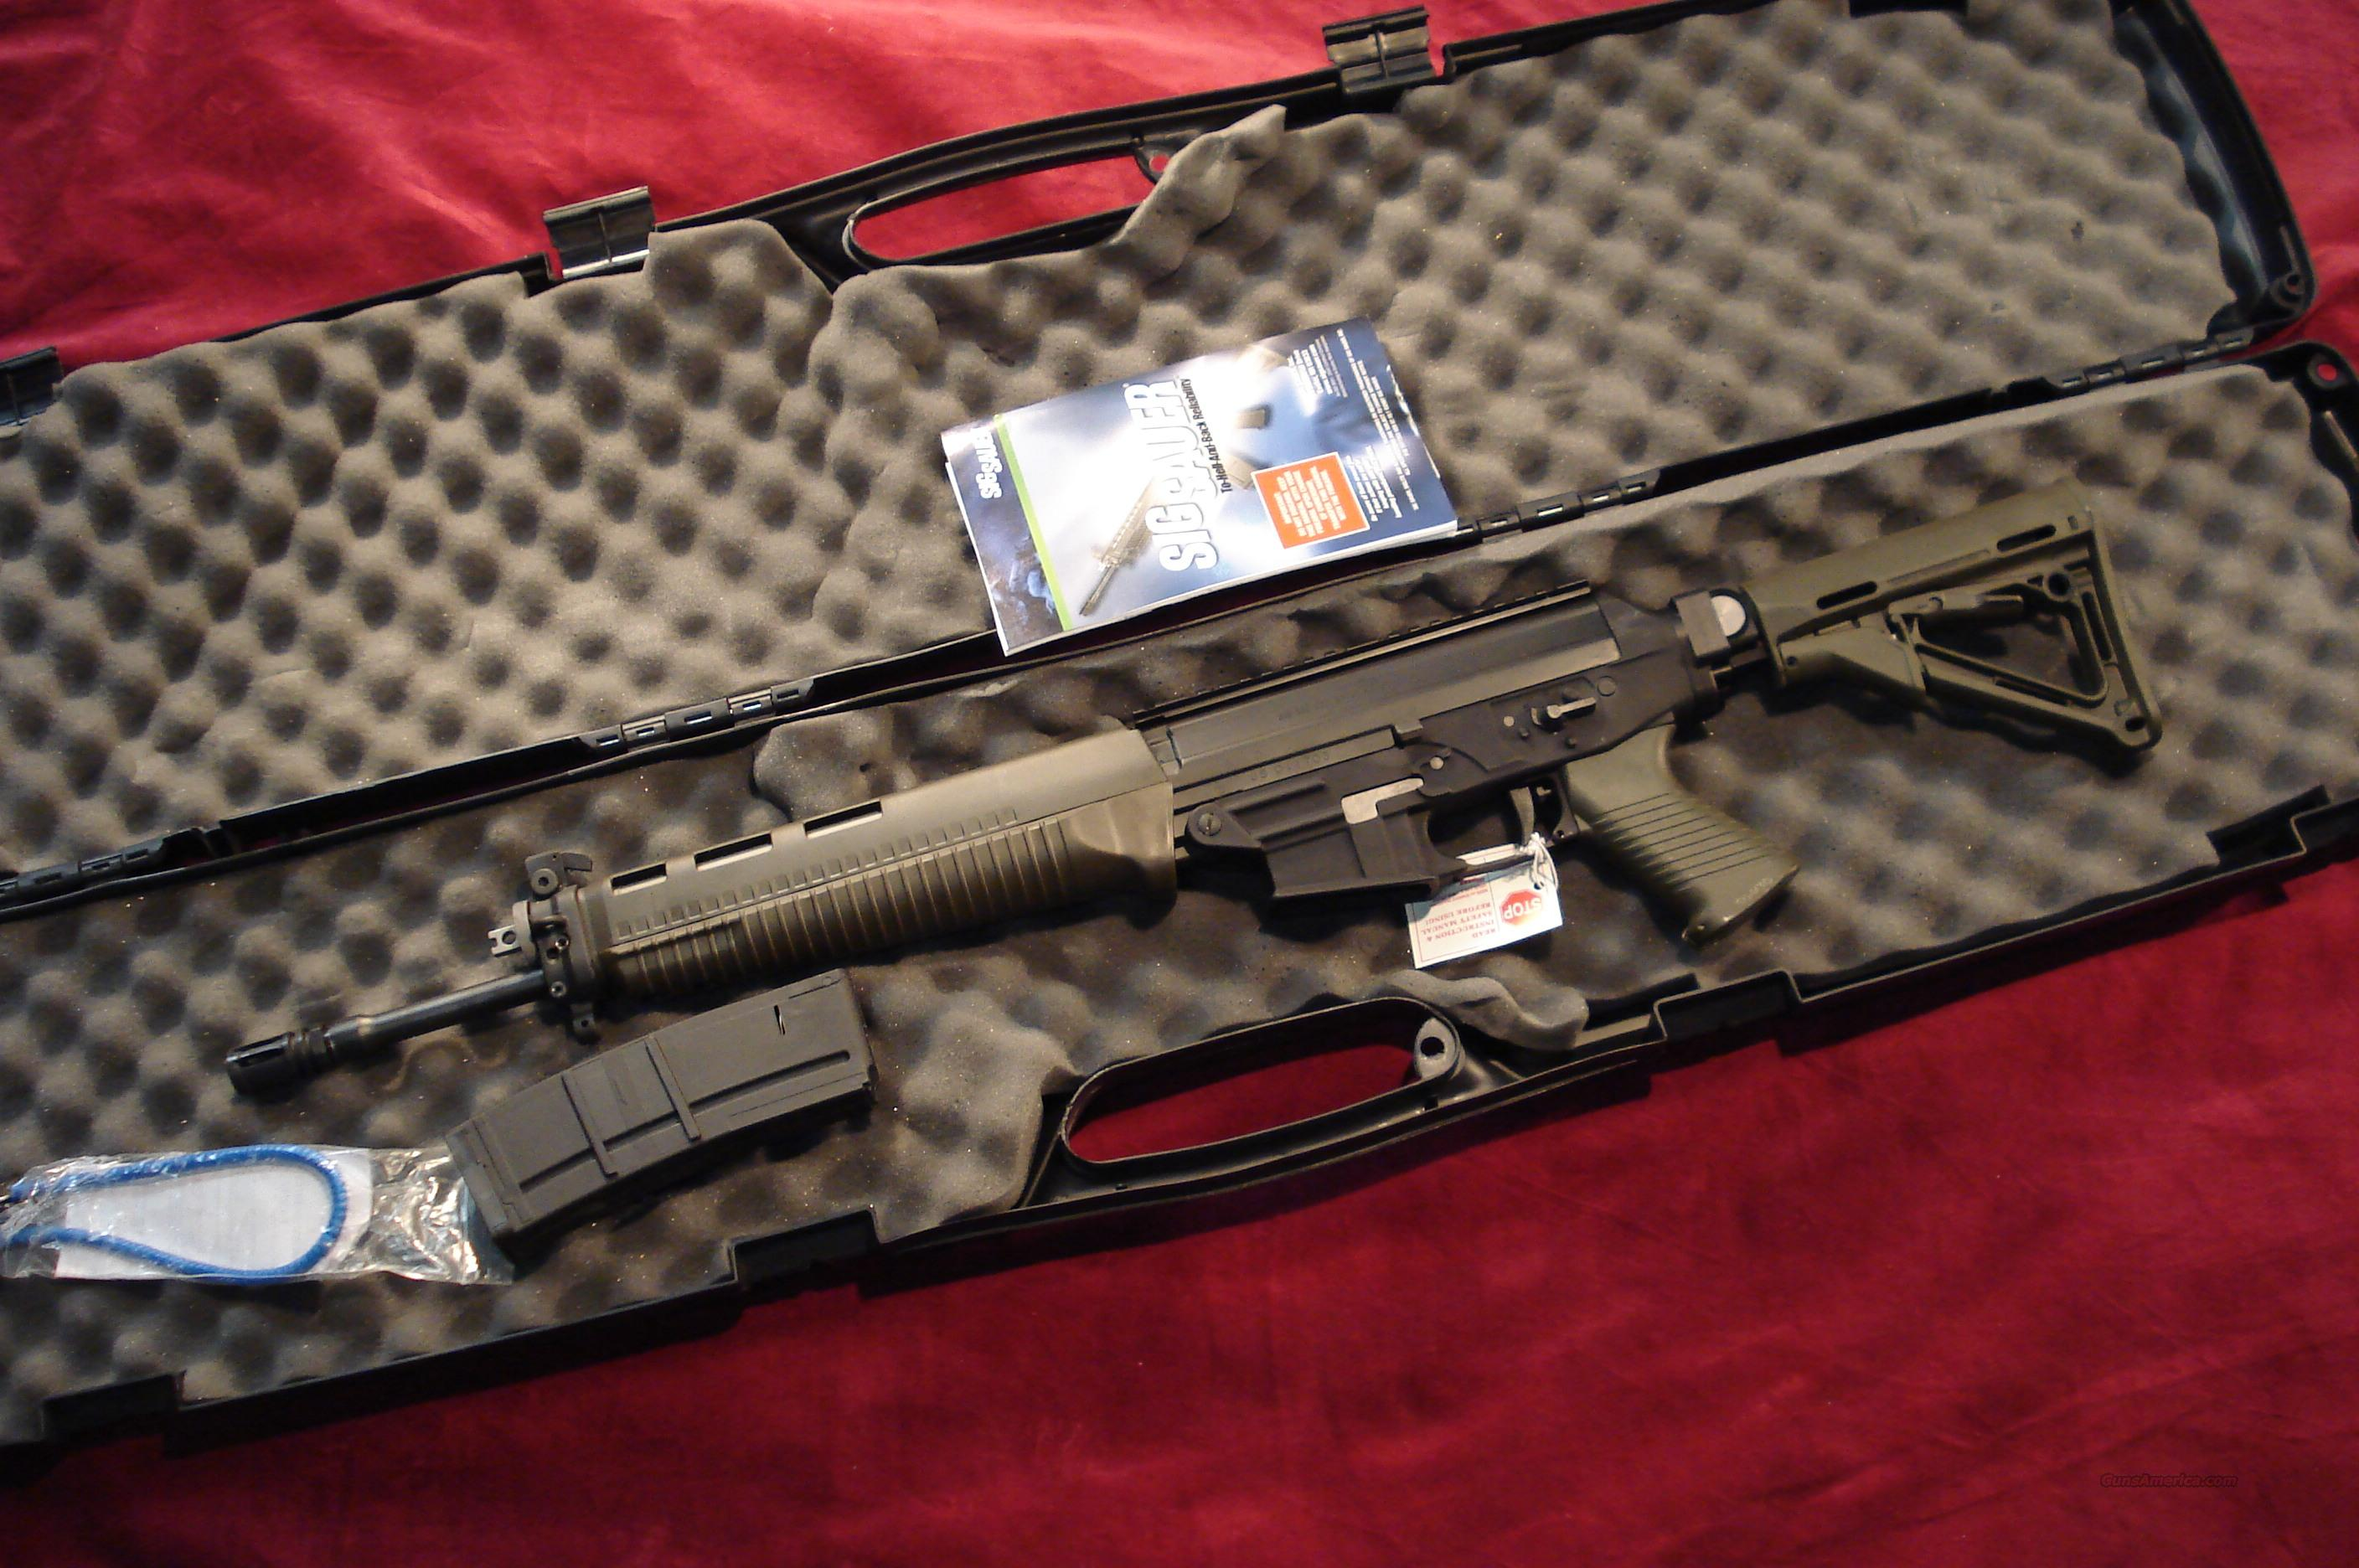 SIGARMS 556 COMMANDO CARBINE RIFLE W/SIDE FOLDER AND  FLIP UP SIGHTS NEW   Guns > Rifles > Sig - Sauer/Sigarms Rifles